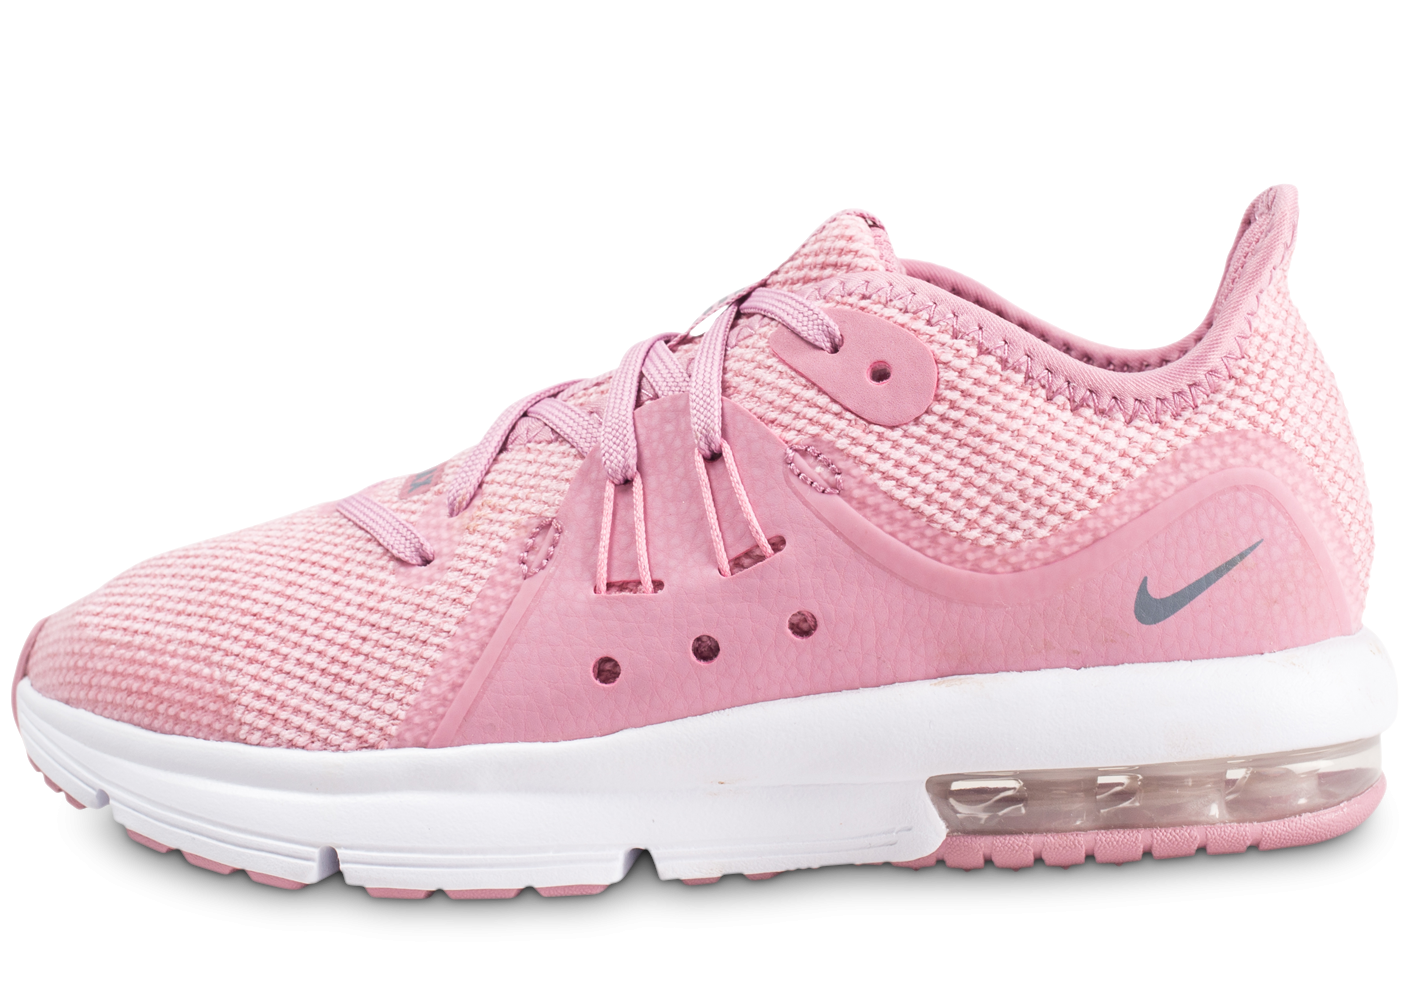 wholesale great deals 2017 aliexpress Nike Air Max Sequent 3 rose enfant